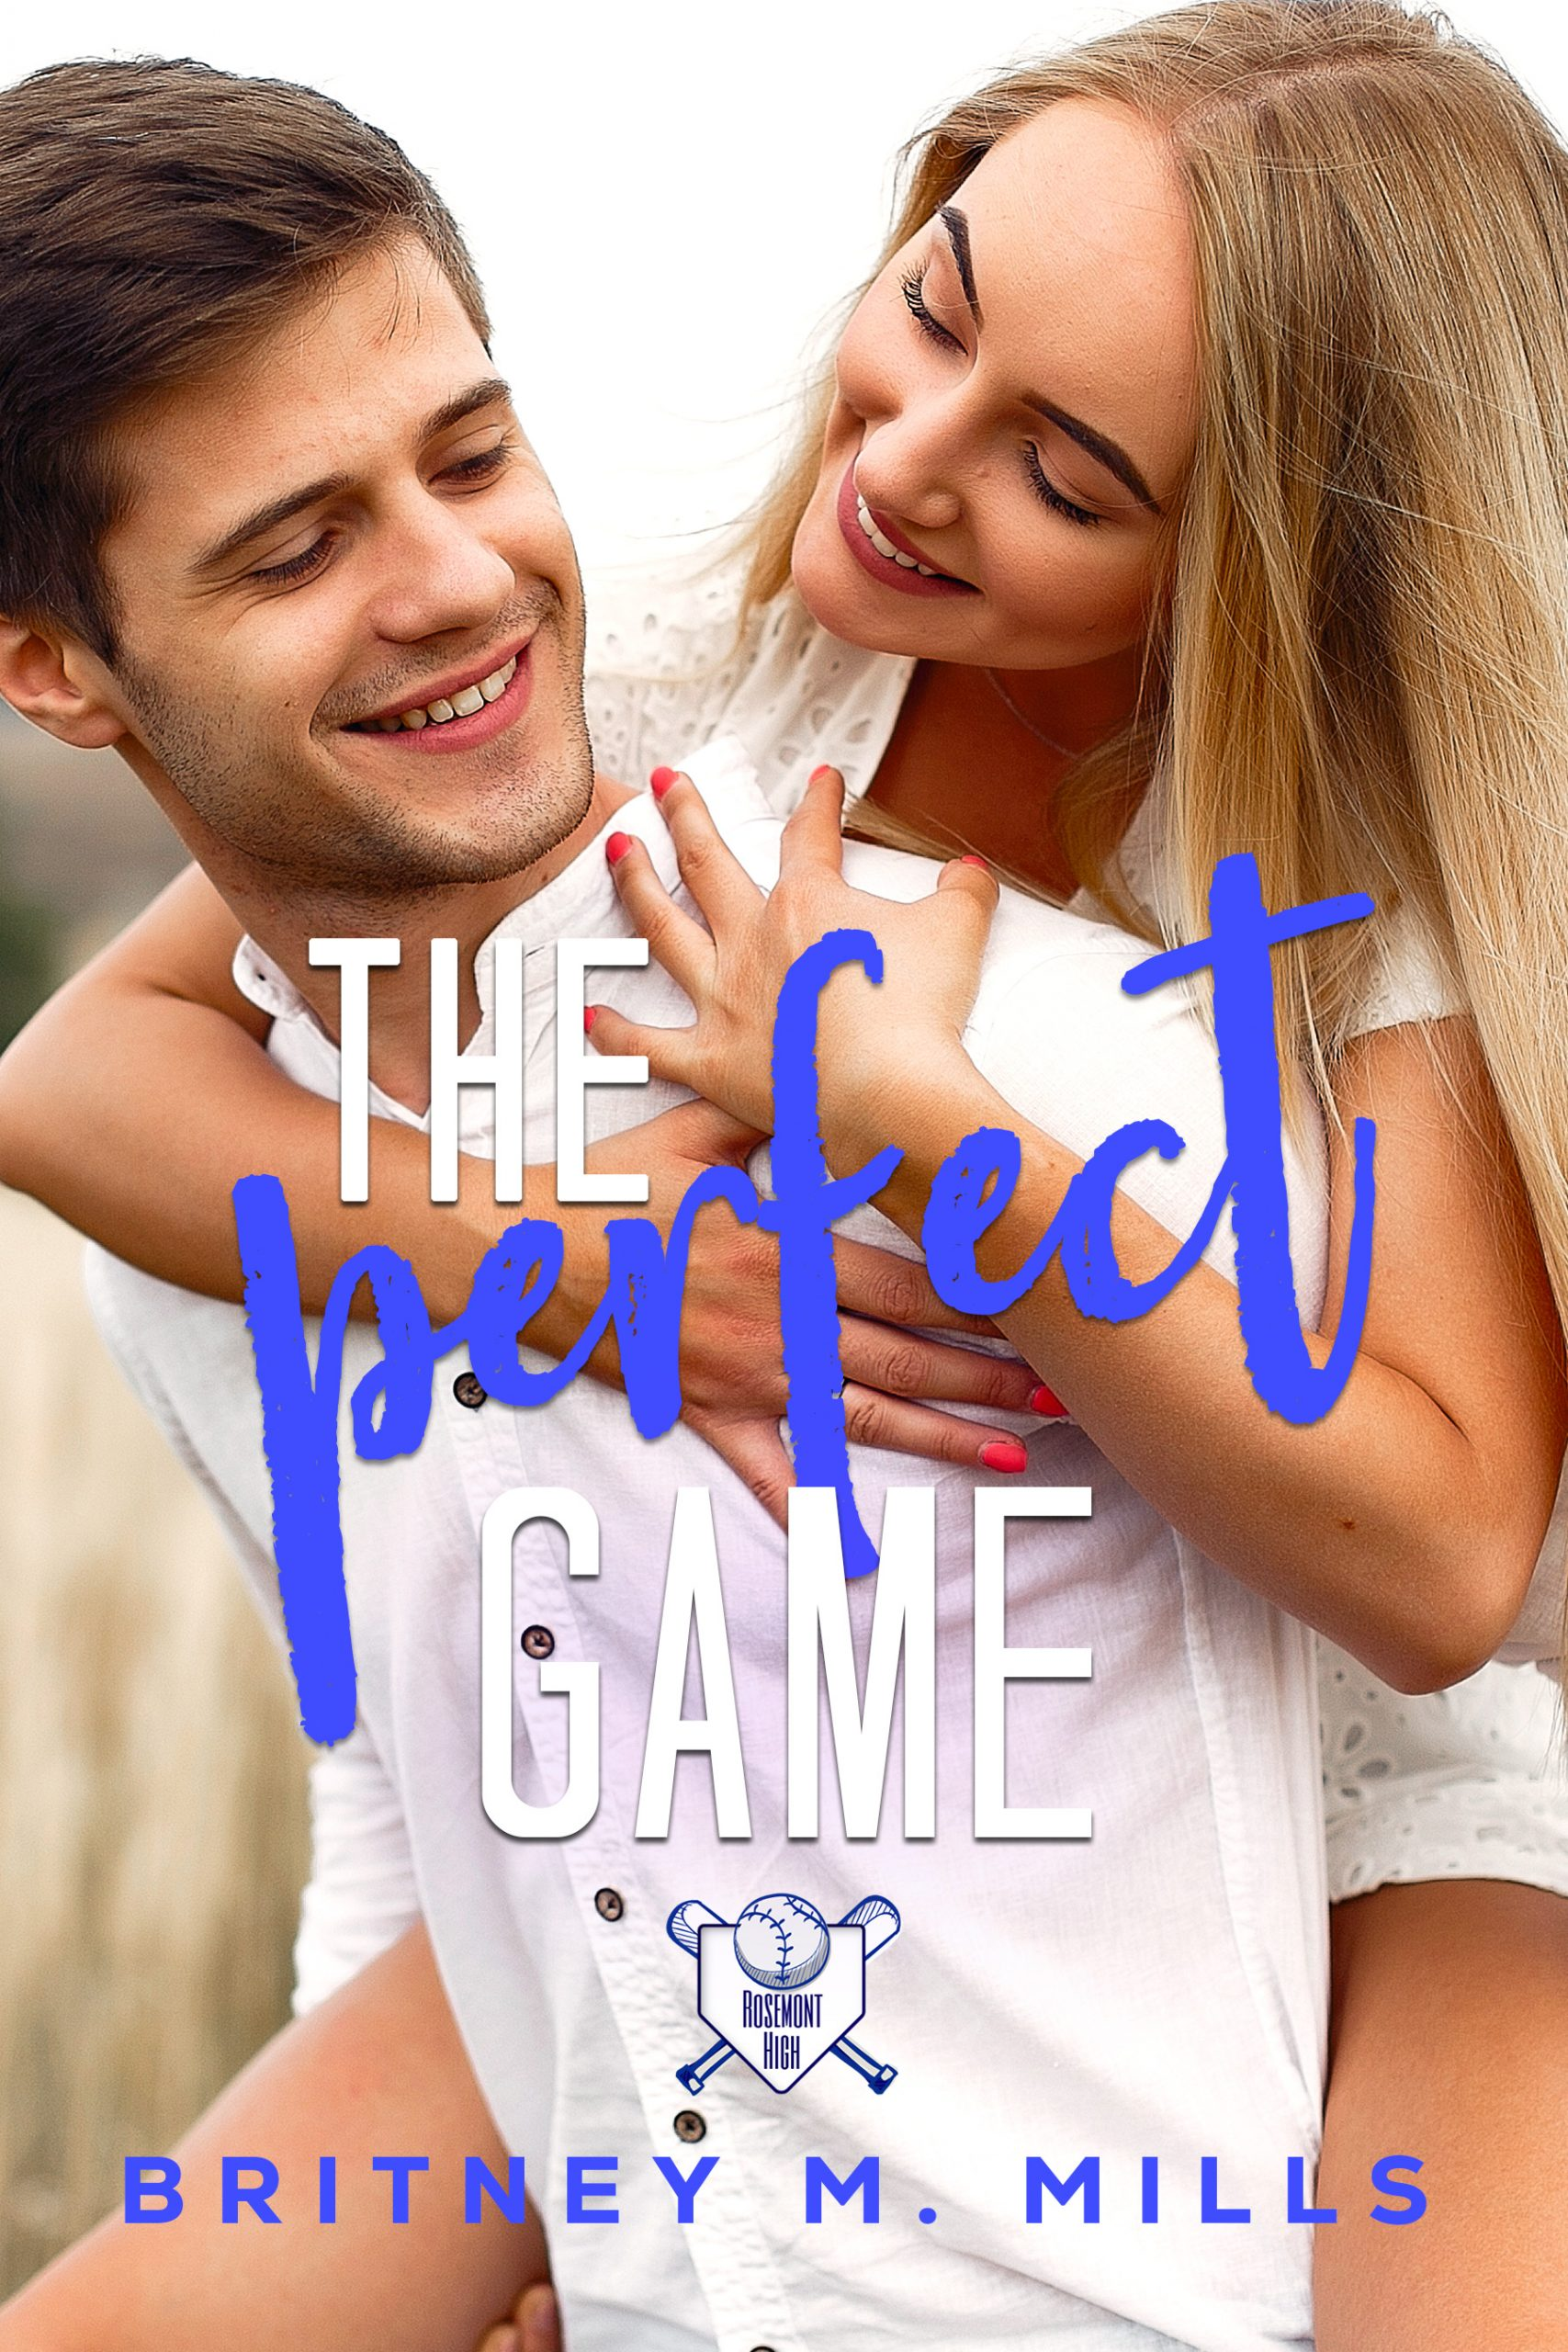 The Perfect Game by Britney M. Millls l A Young Adult Romance